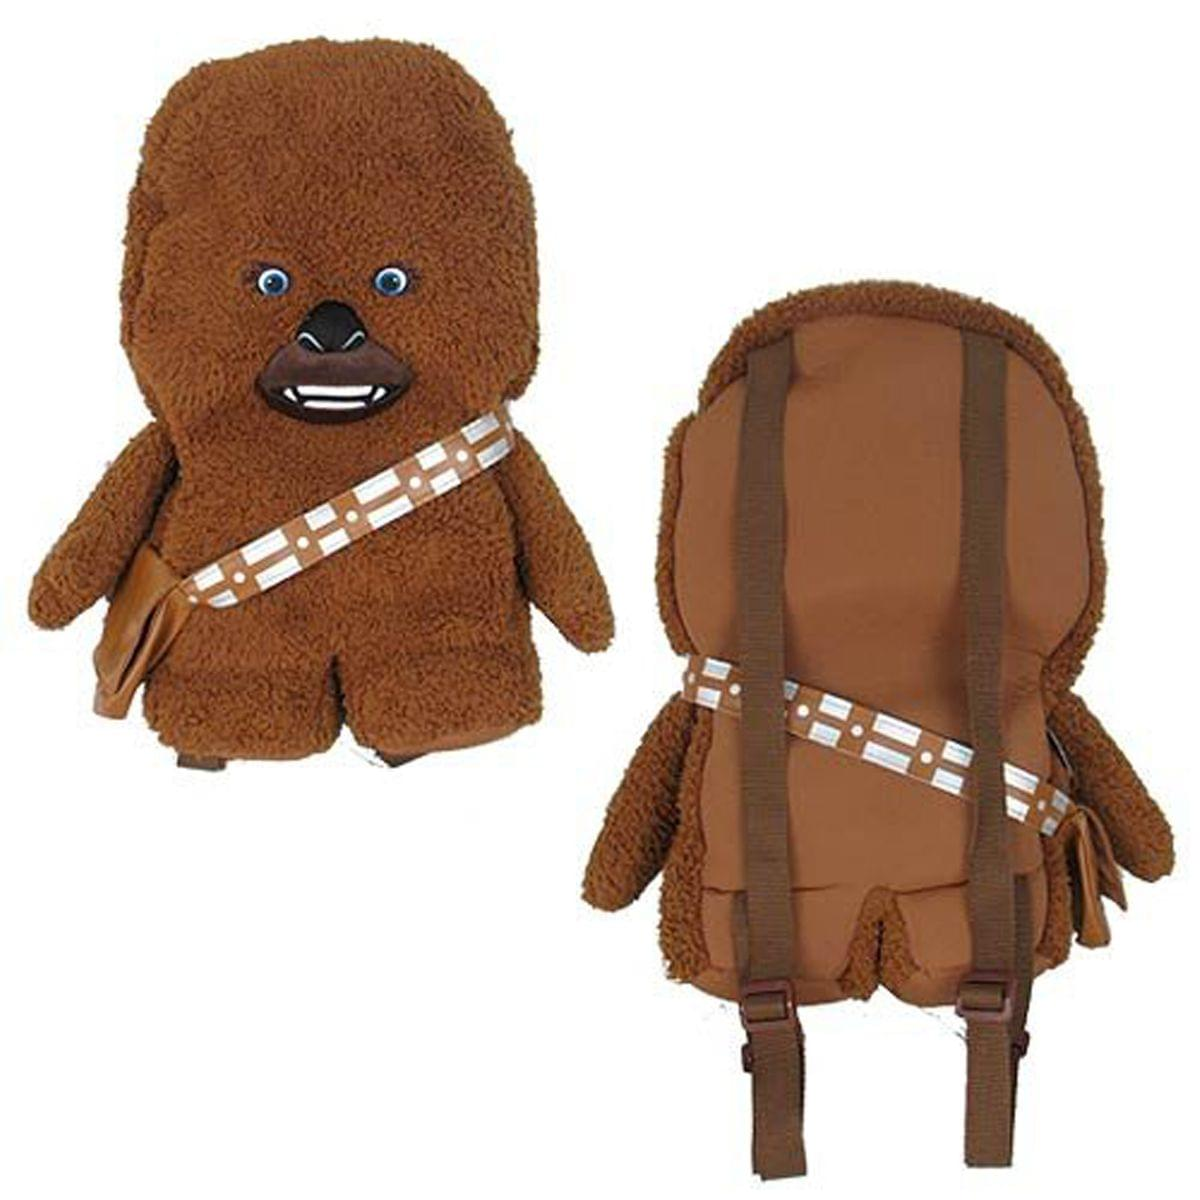 Comic Images Star Wars Chewbacca Plush Backpack